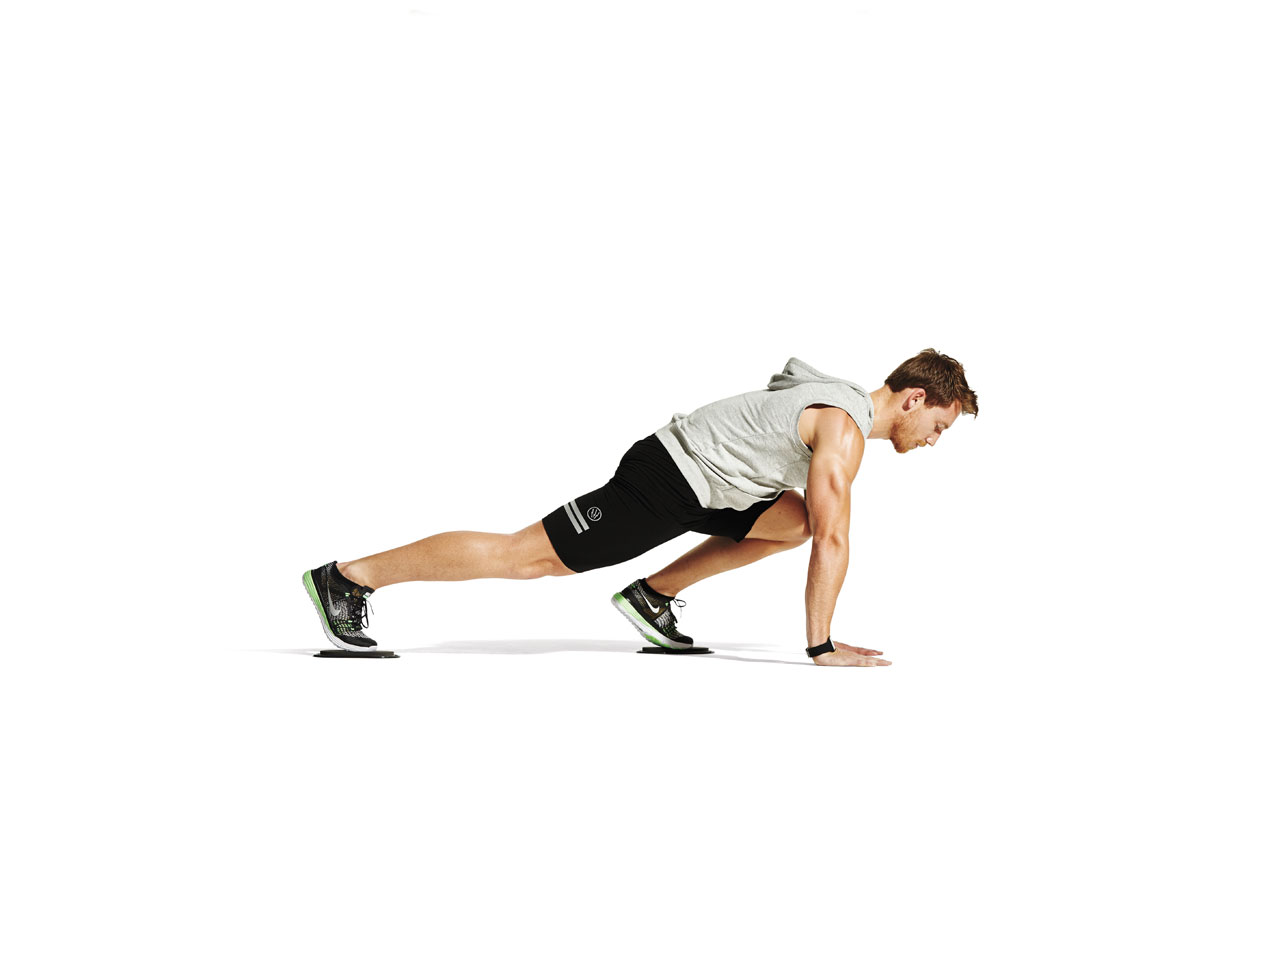 7 Agonizing 2 Minute Workouts Thatll Torch Every Muscle In Your Body